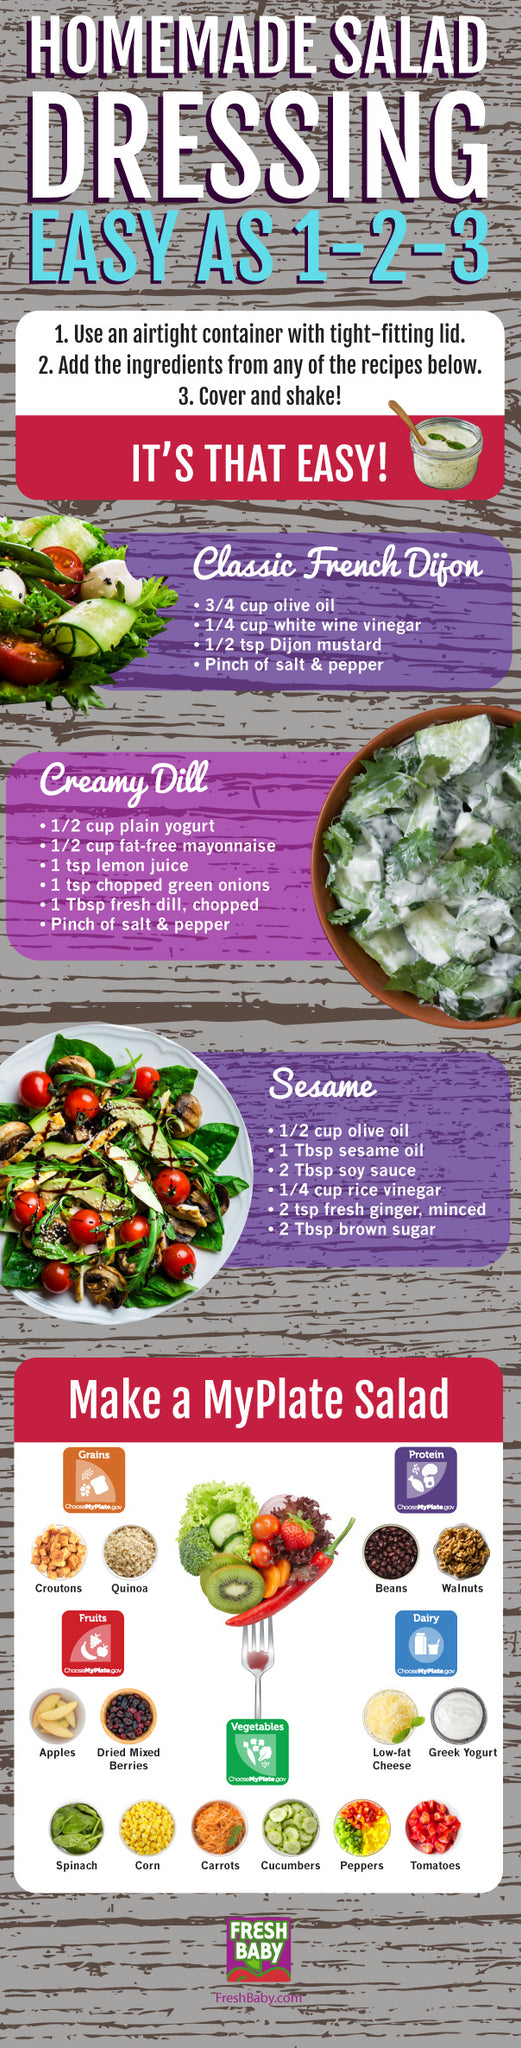 Home made salad dressing infographic from Fresh Baby